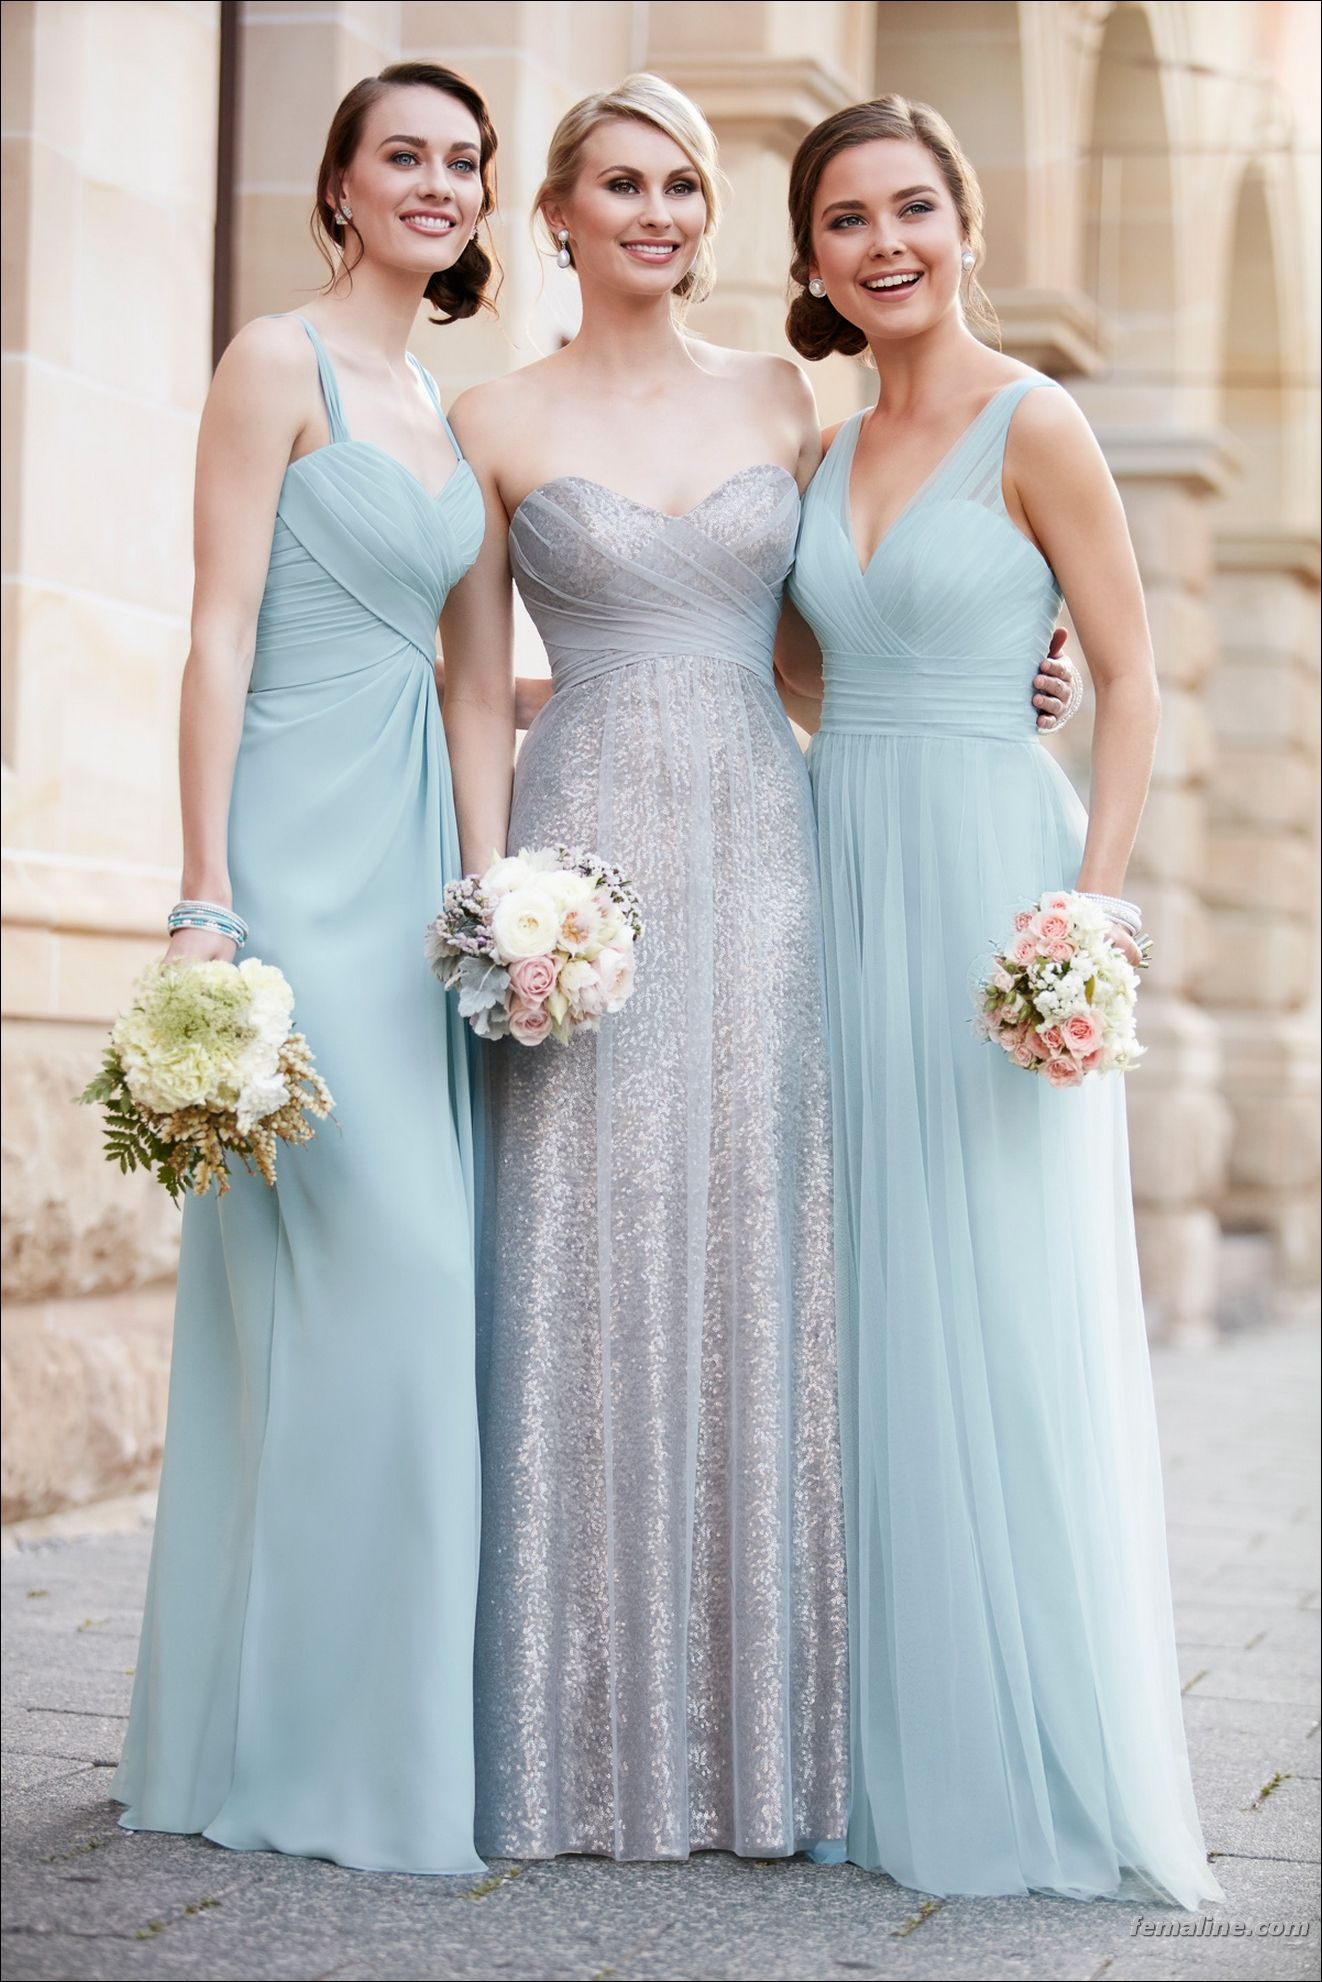 100 Latest Trends Bridesmaid Dresses | Chic bridesmaid dresses ...